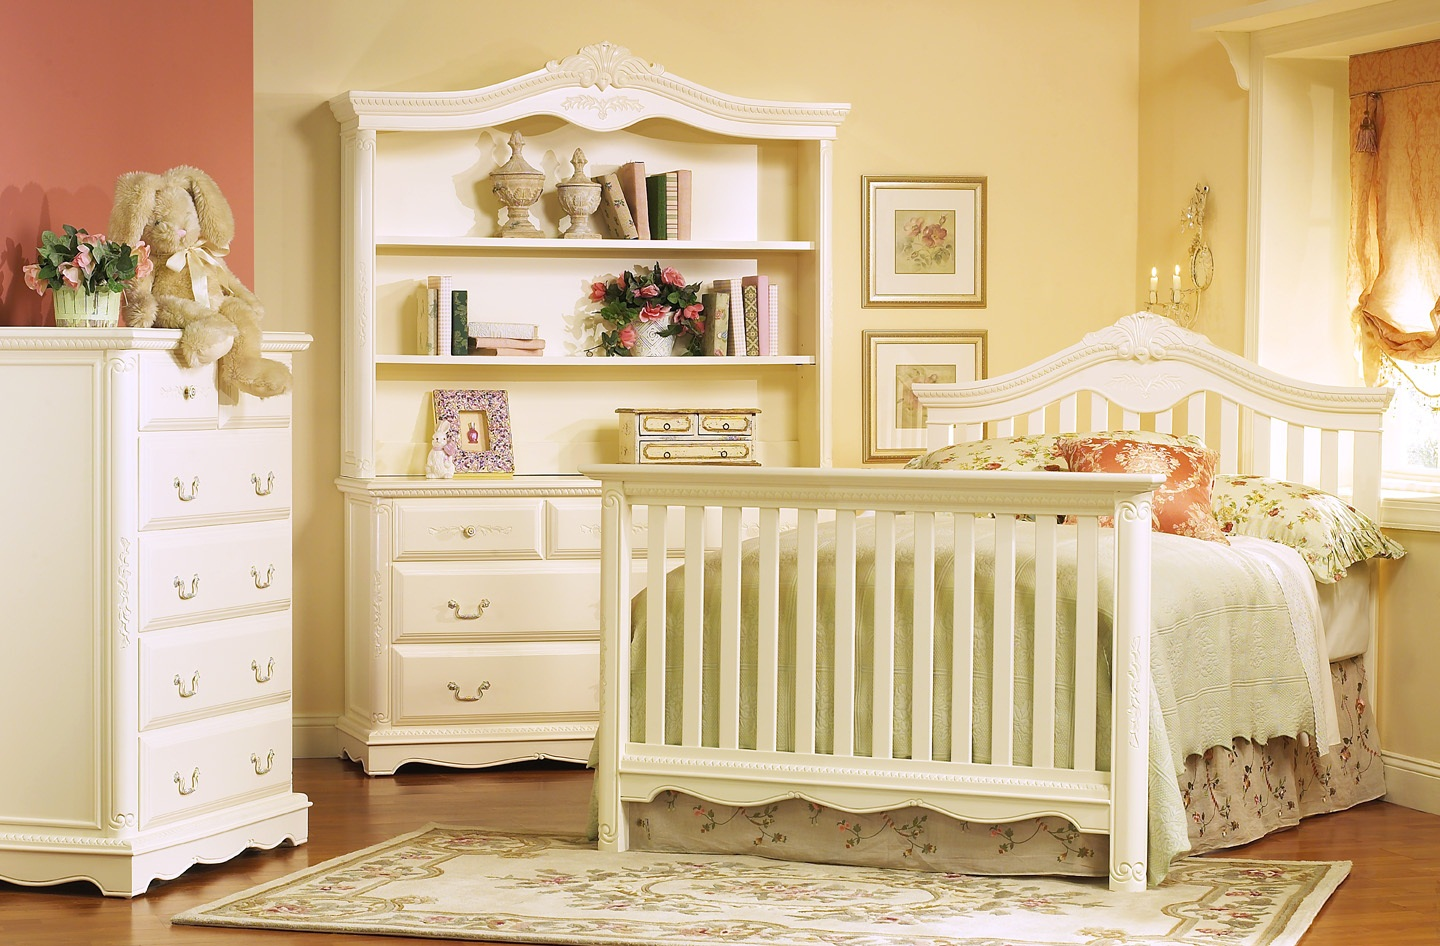 charming white munire crib on wooden floor plus white floral carpet plus white vanity before the cream wall for nursery decor ideas